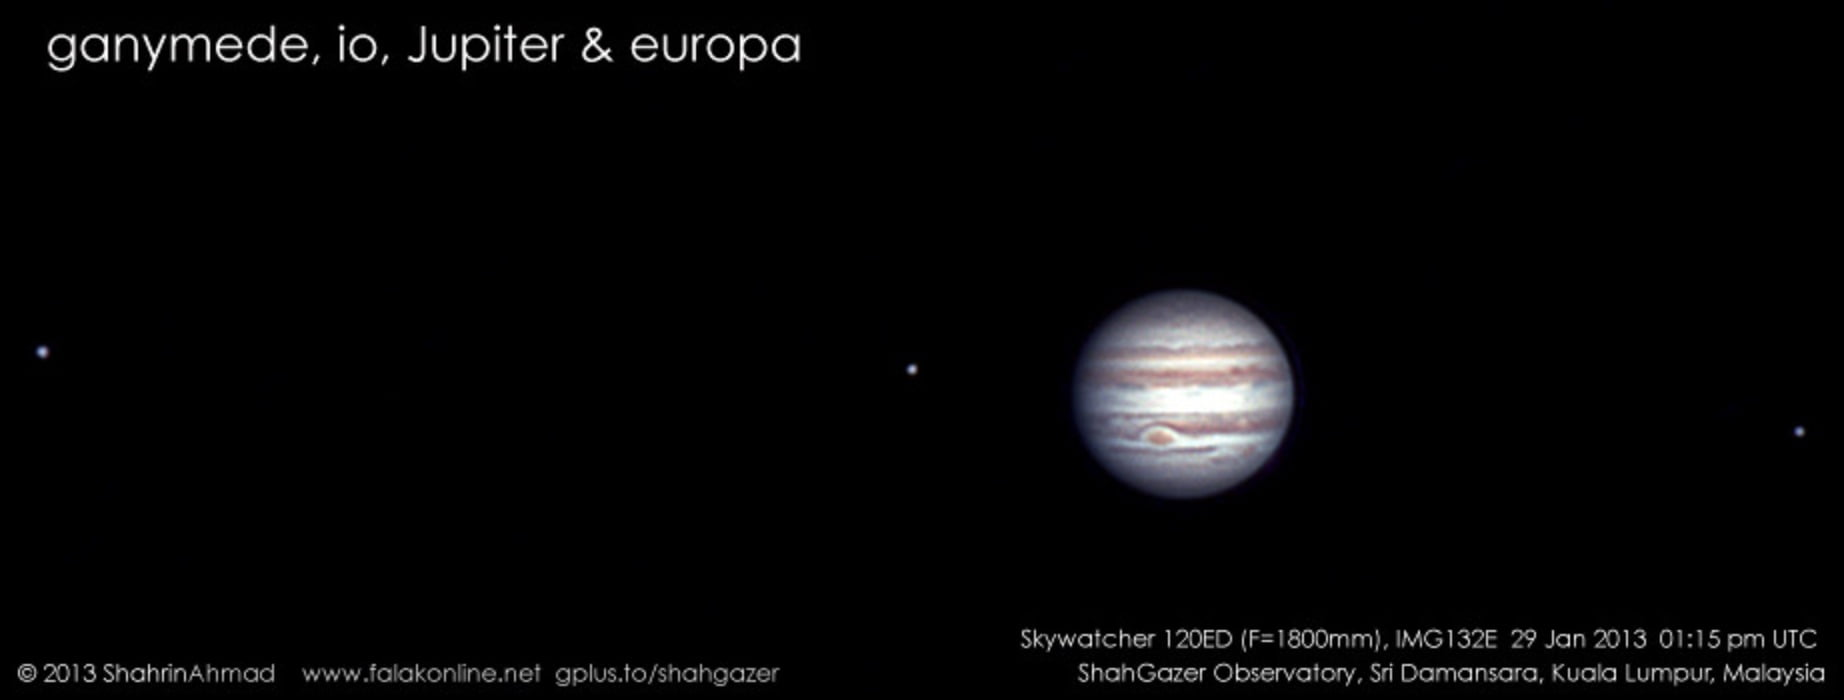 jupiter-29-jan-2013___Shahrin_Ahmad___Flickr.jpg